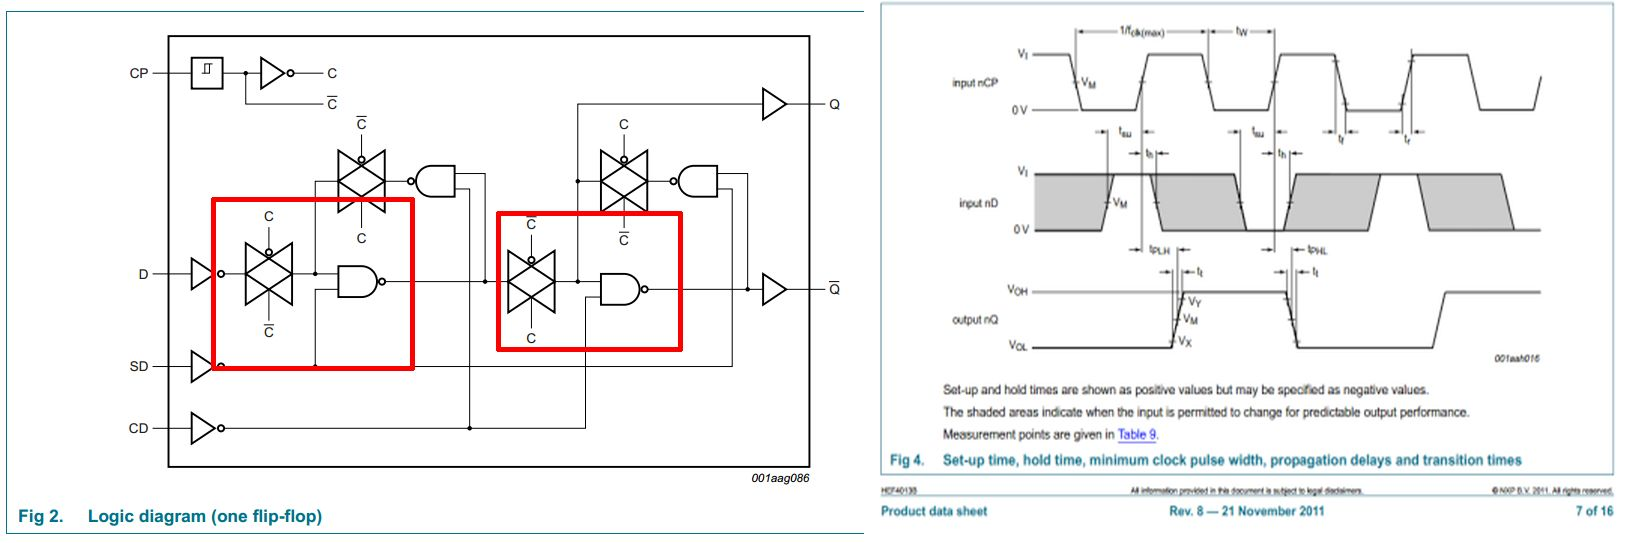 Circuit Diagram Nand Gate Wiring Library And Can You Think Of Any Issues That Relate To Timing Delays Rise Time Pulse